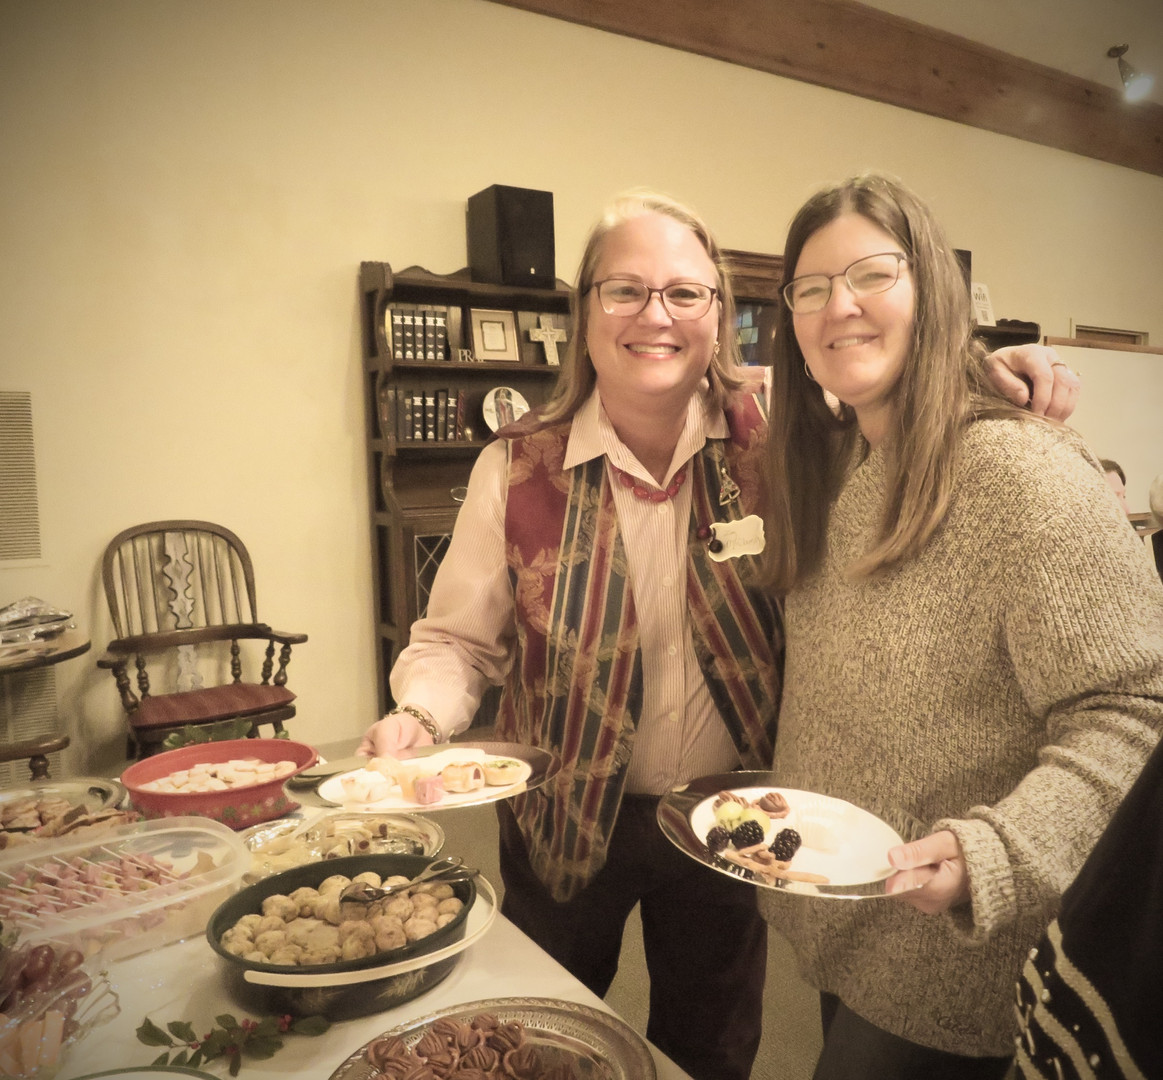 Two happy ladies! (Of course they are --- look at that spread!)